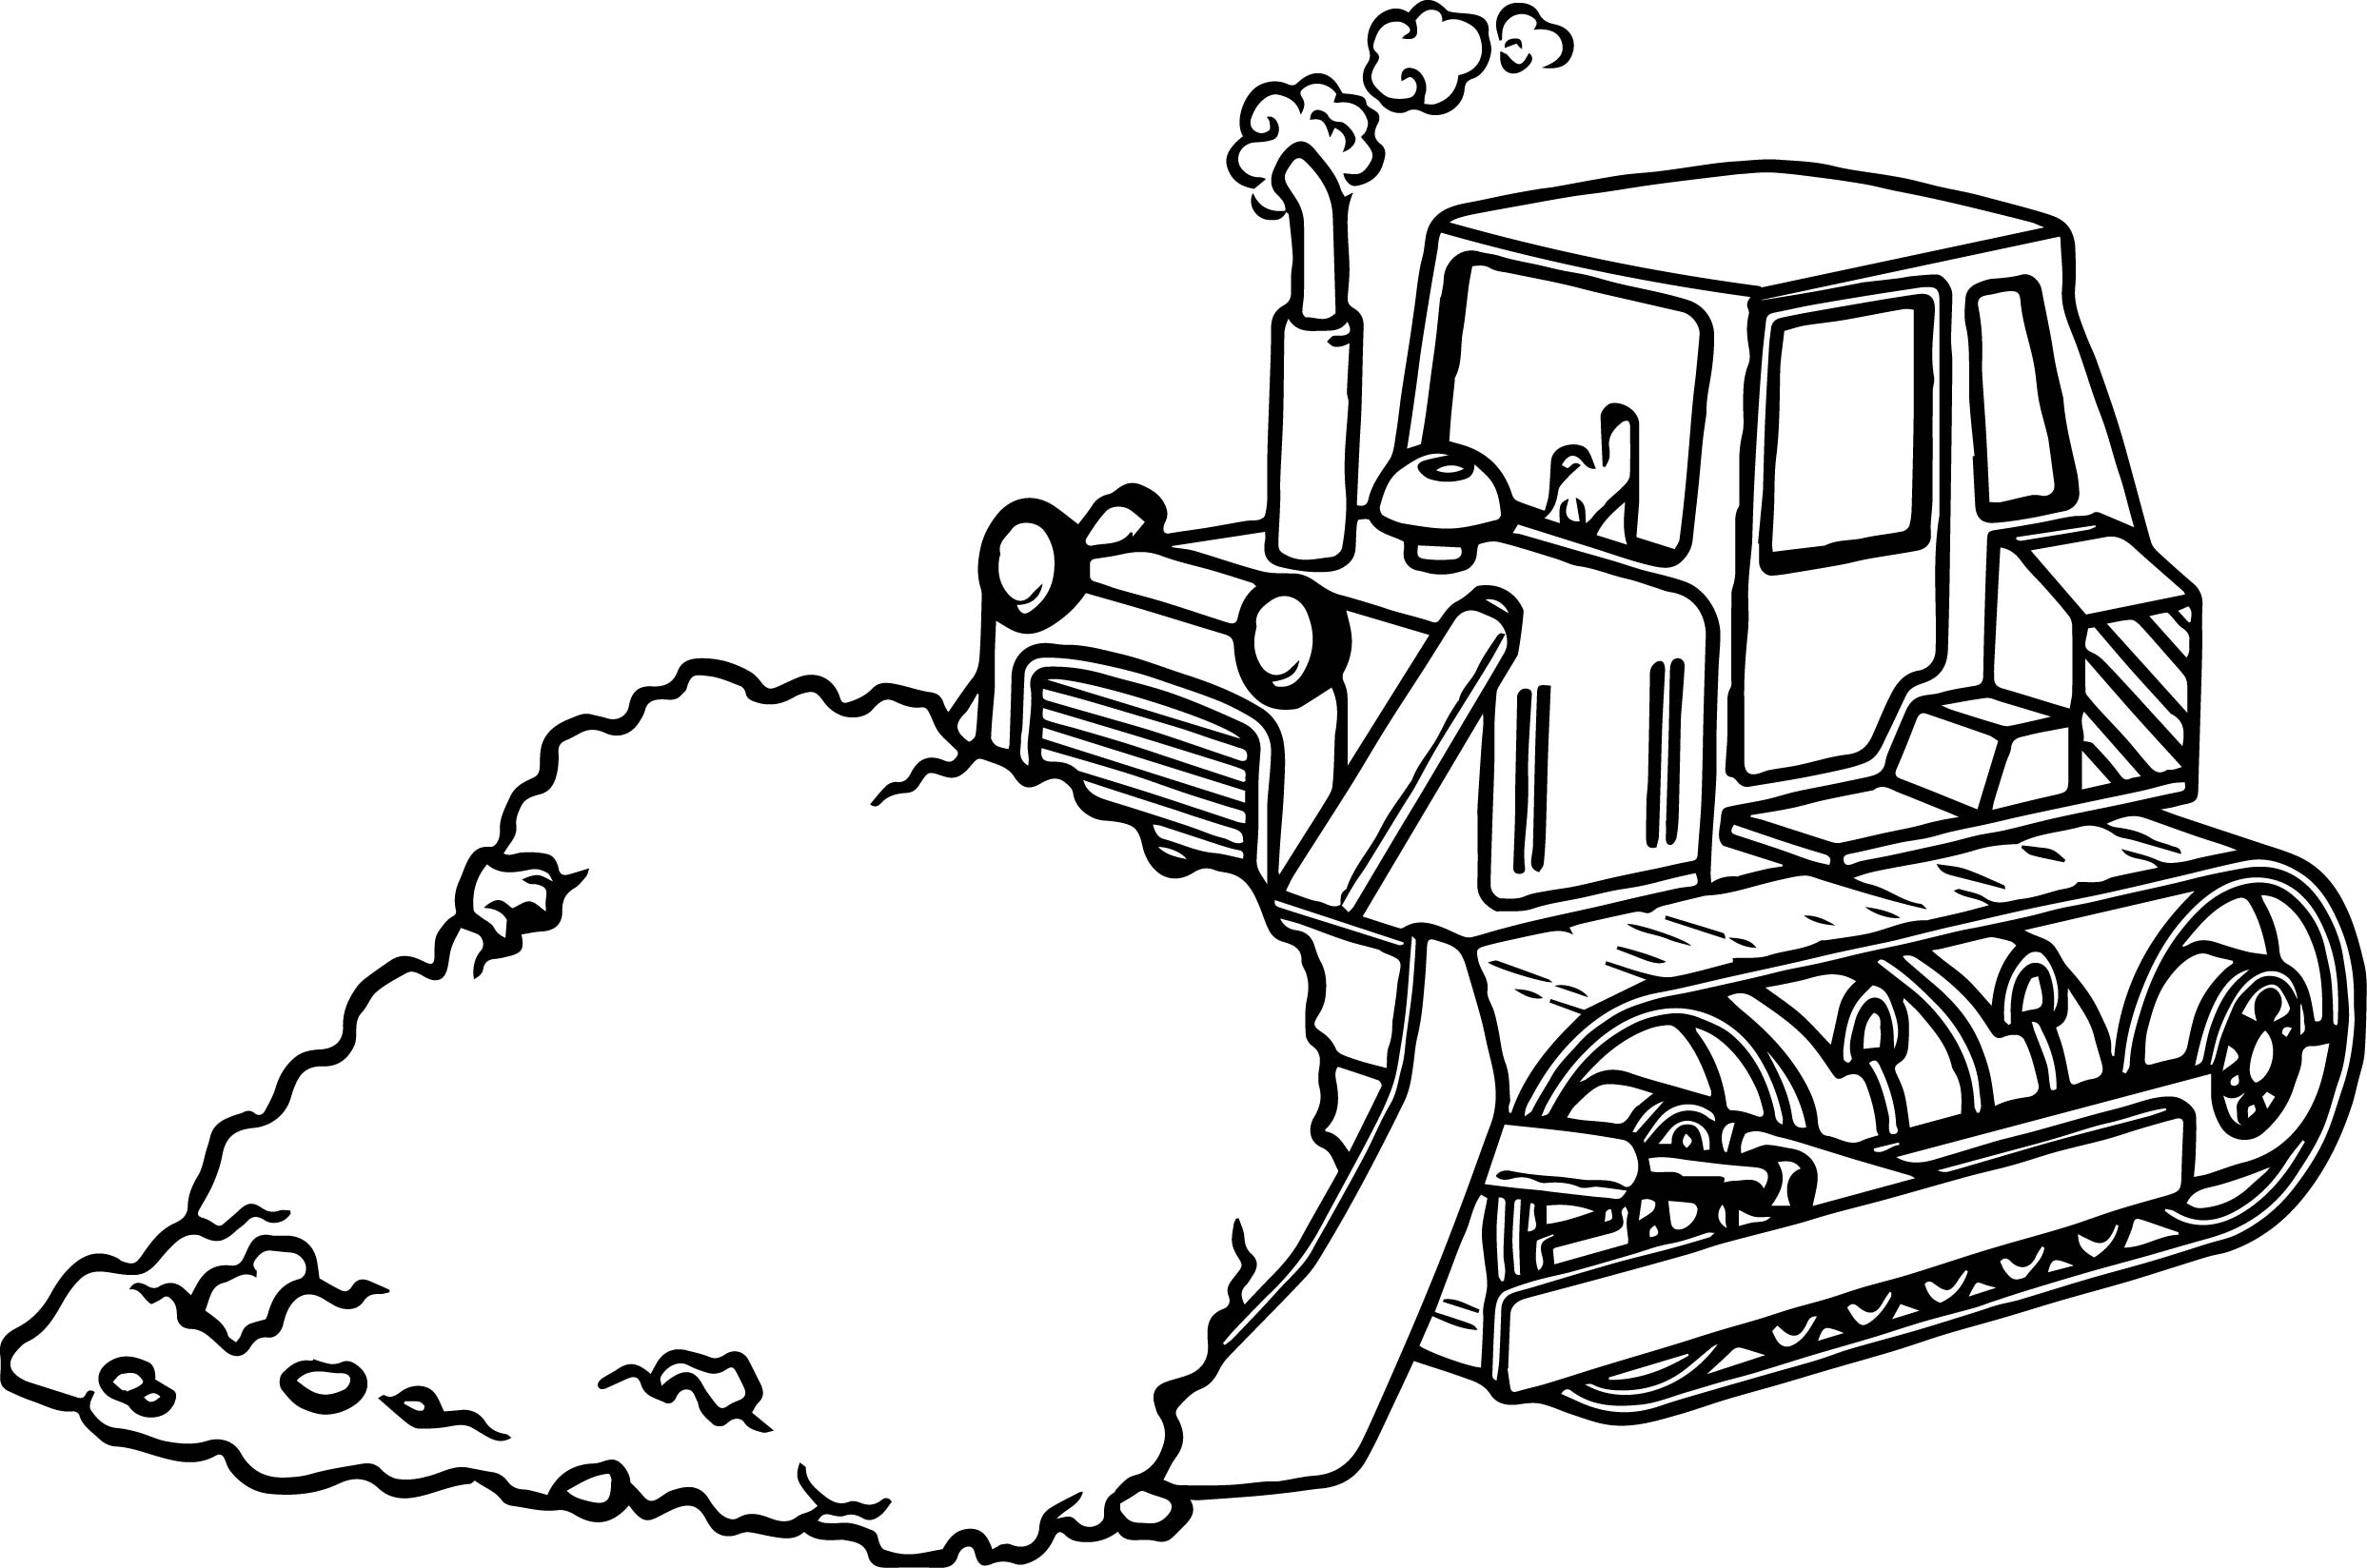 Construction Equipment Drawing At Getdrawings